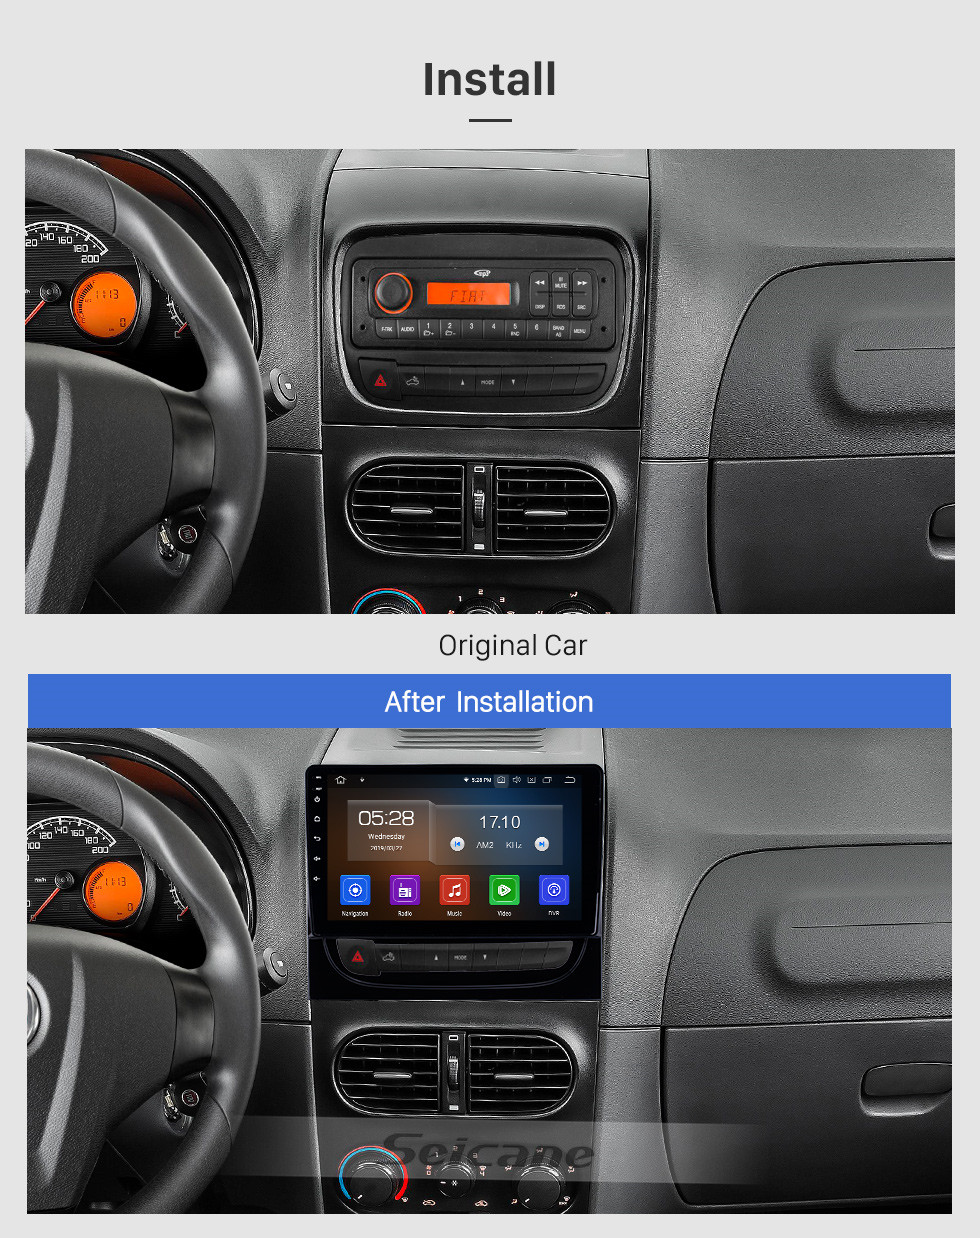 Seicane 2012-2016 Fiat Strada/cdea 9 inch Android 10.0 Bluetooth Radio HD Touchscreen GPS Navigation Carplay USB support Mirror Link 1080P Video 4G OBD